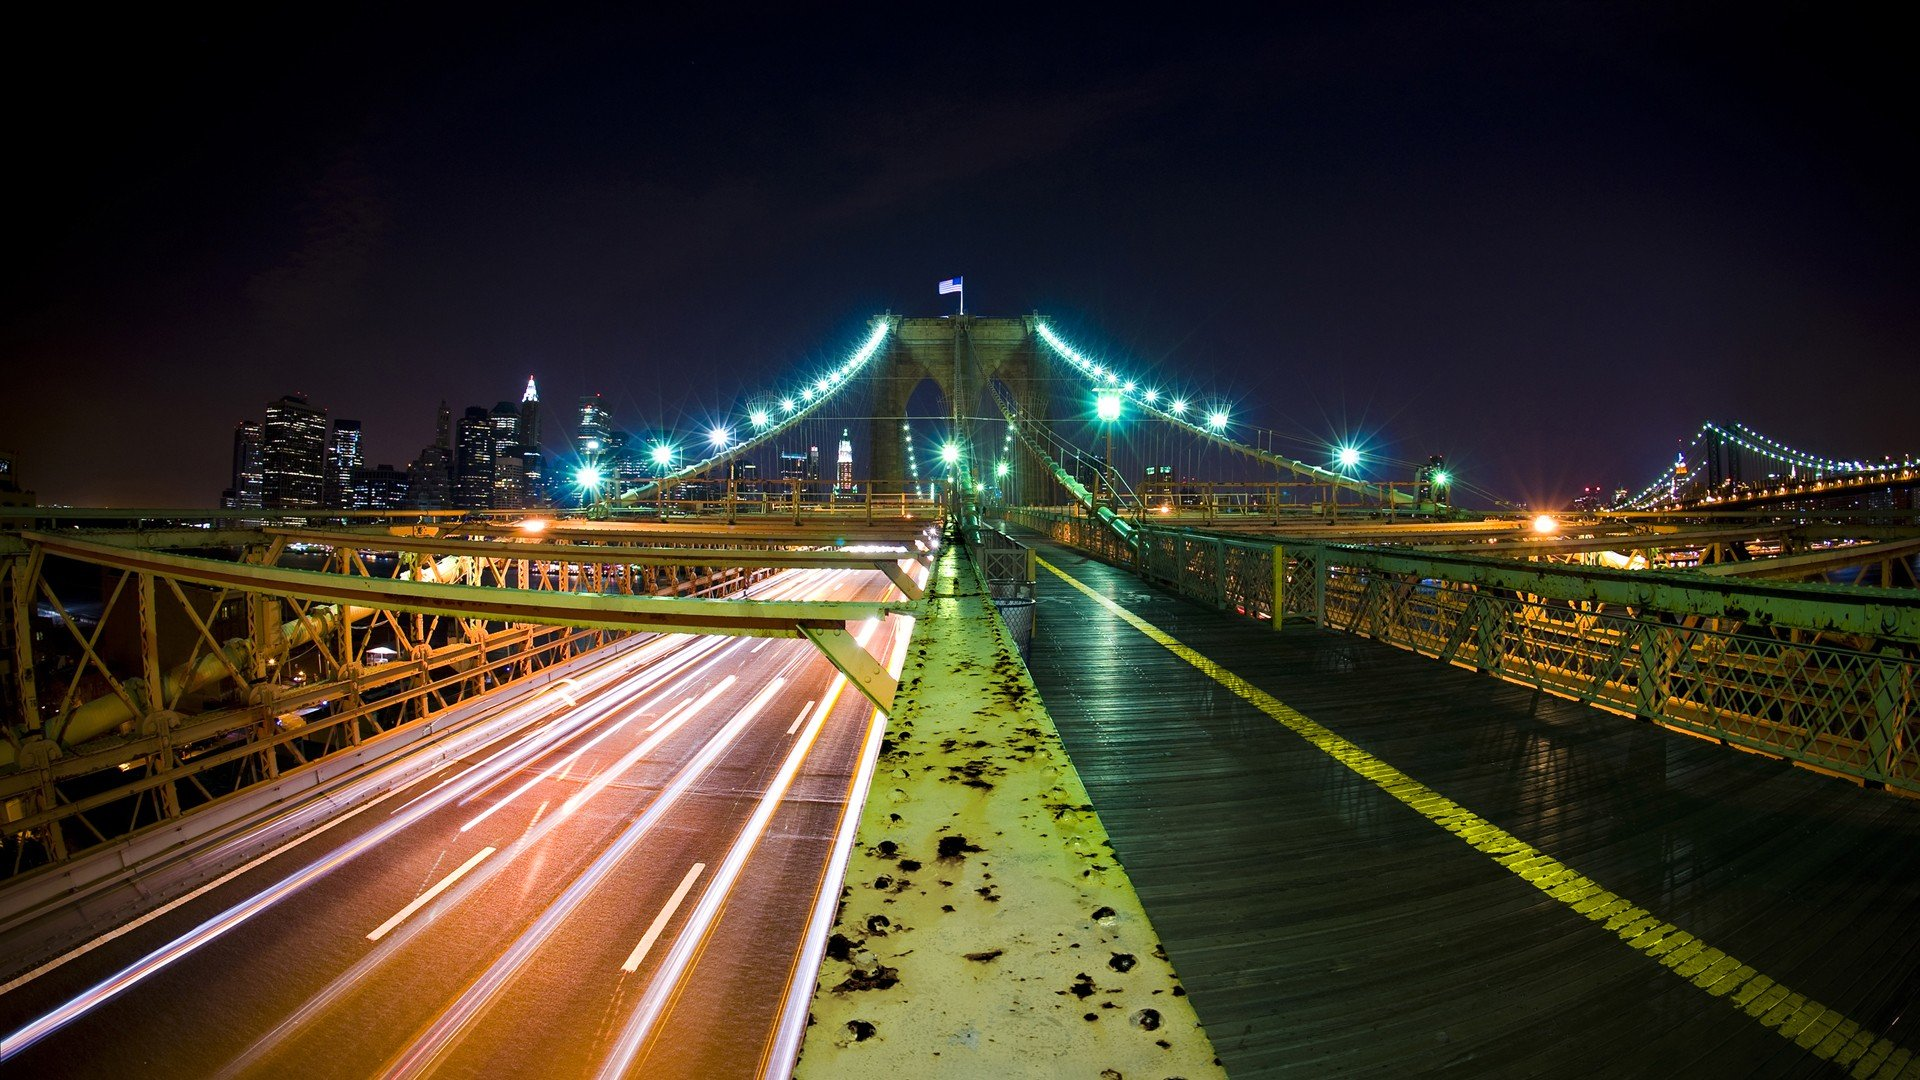 Architecture, Bridge, Long Exposure, Night, Street Light